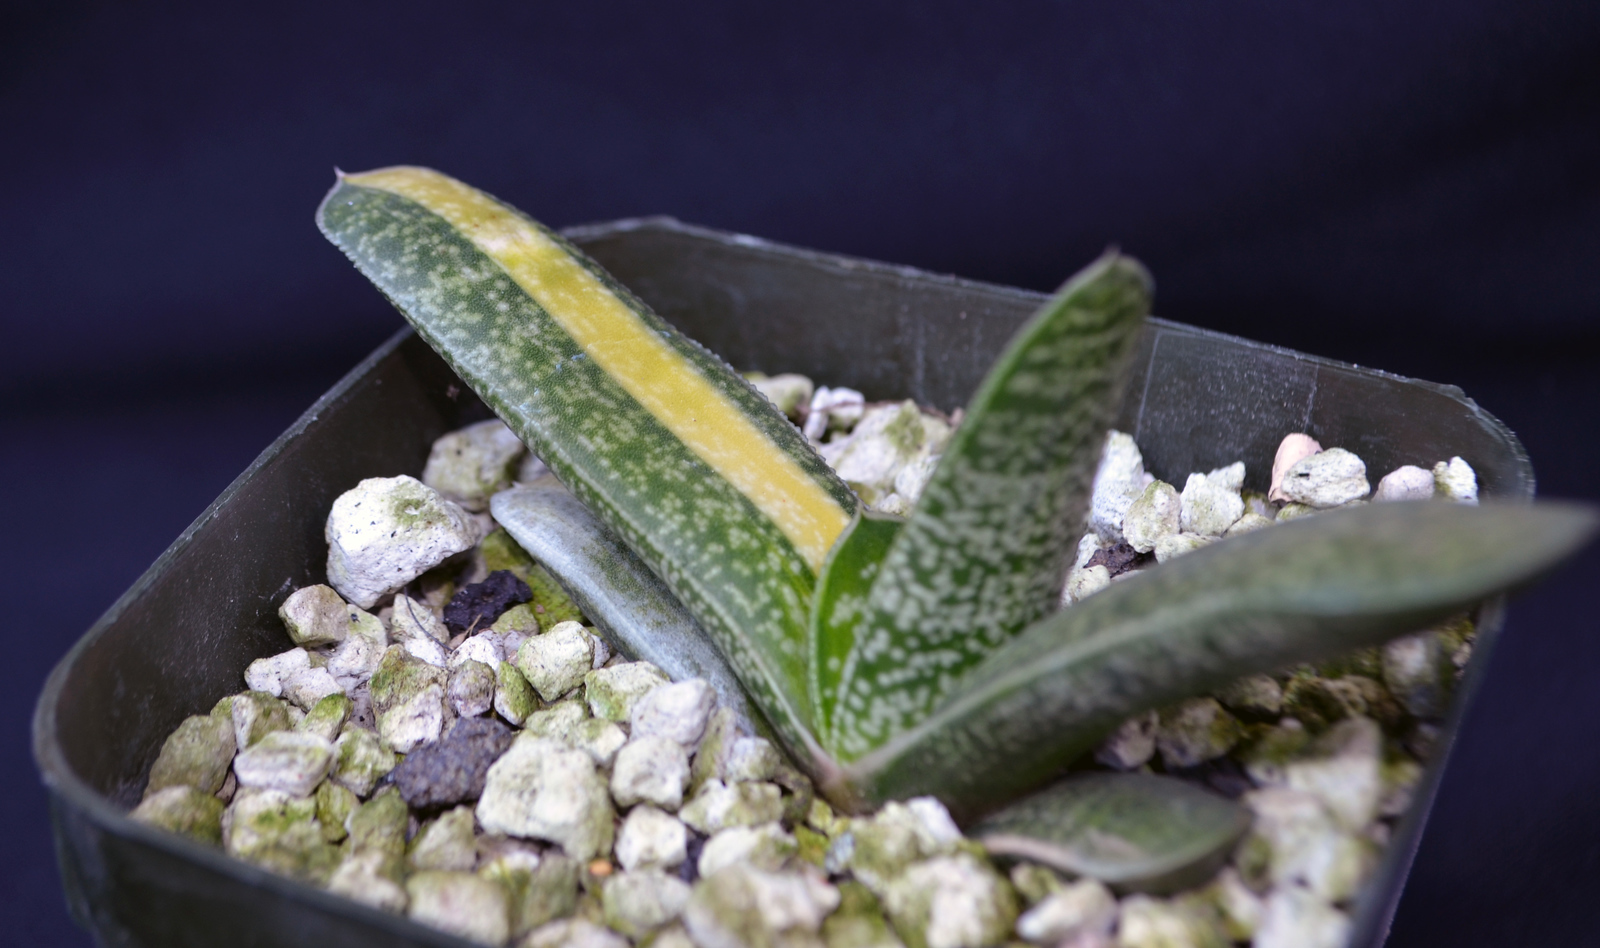 Gasteria variegated hybrid x Charles Wiley Open Pollinated